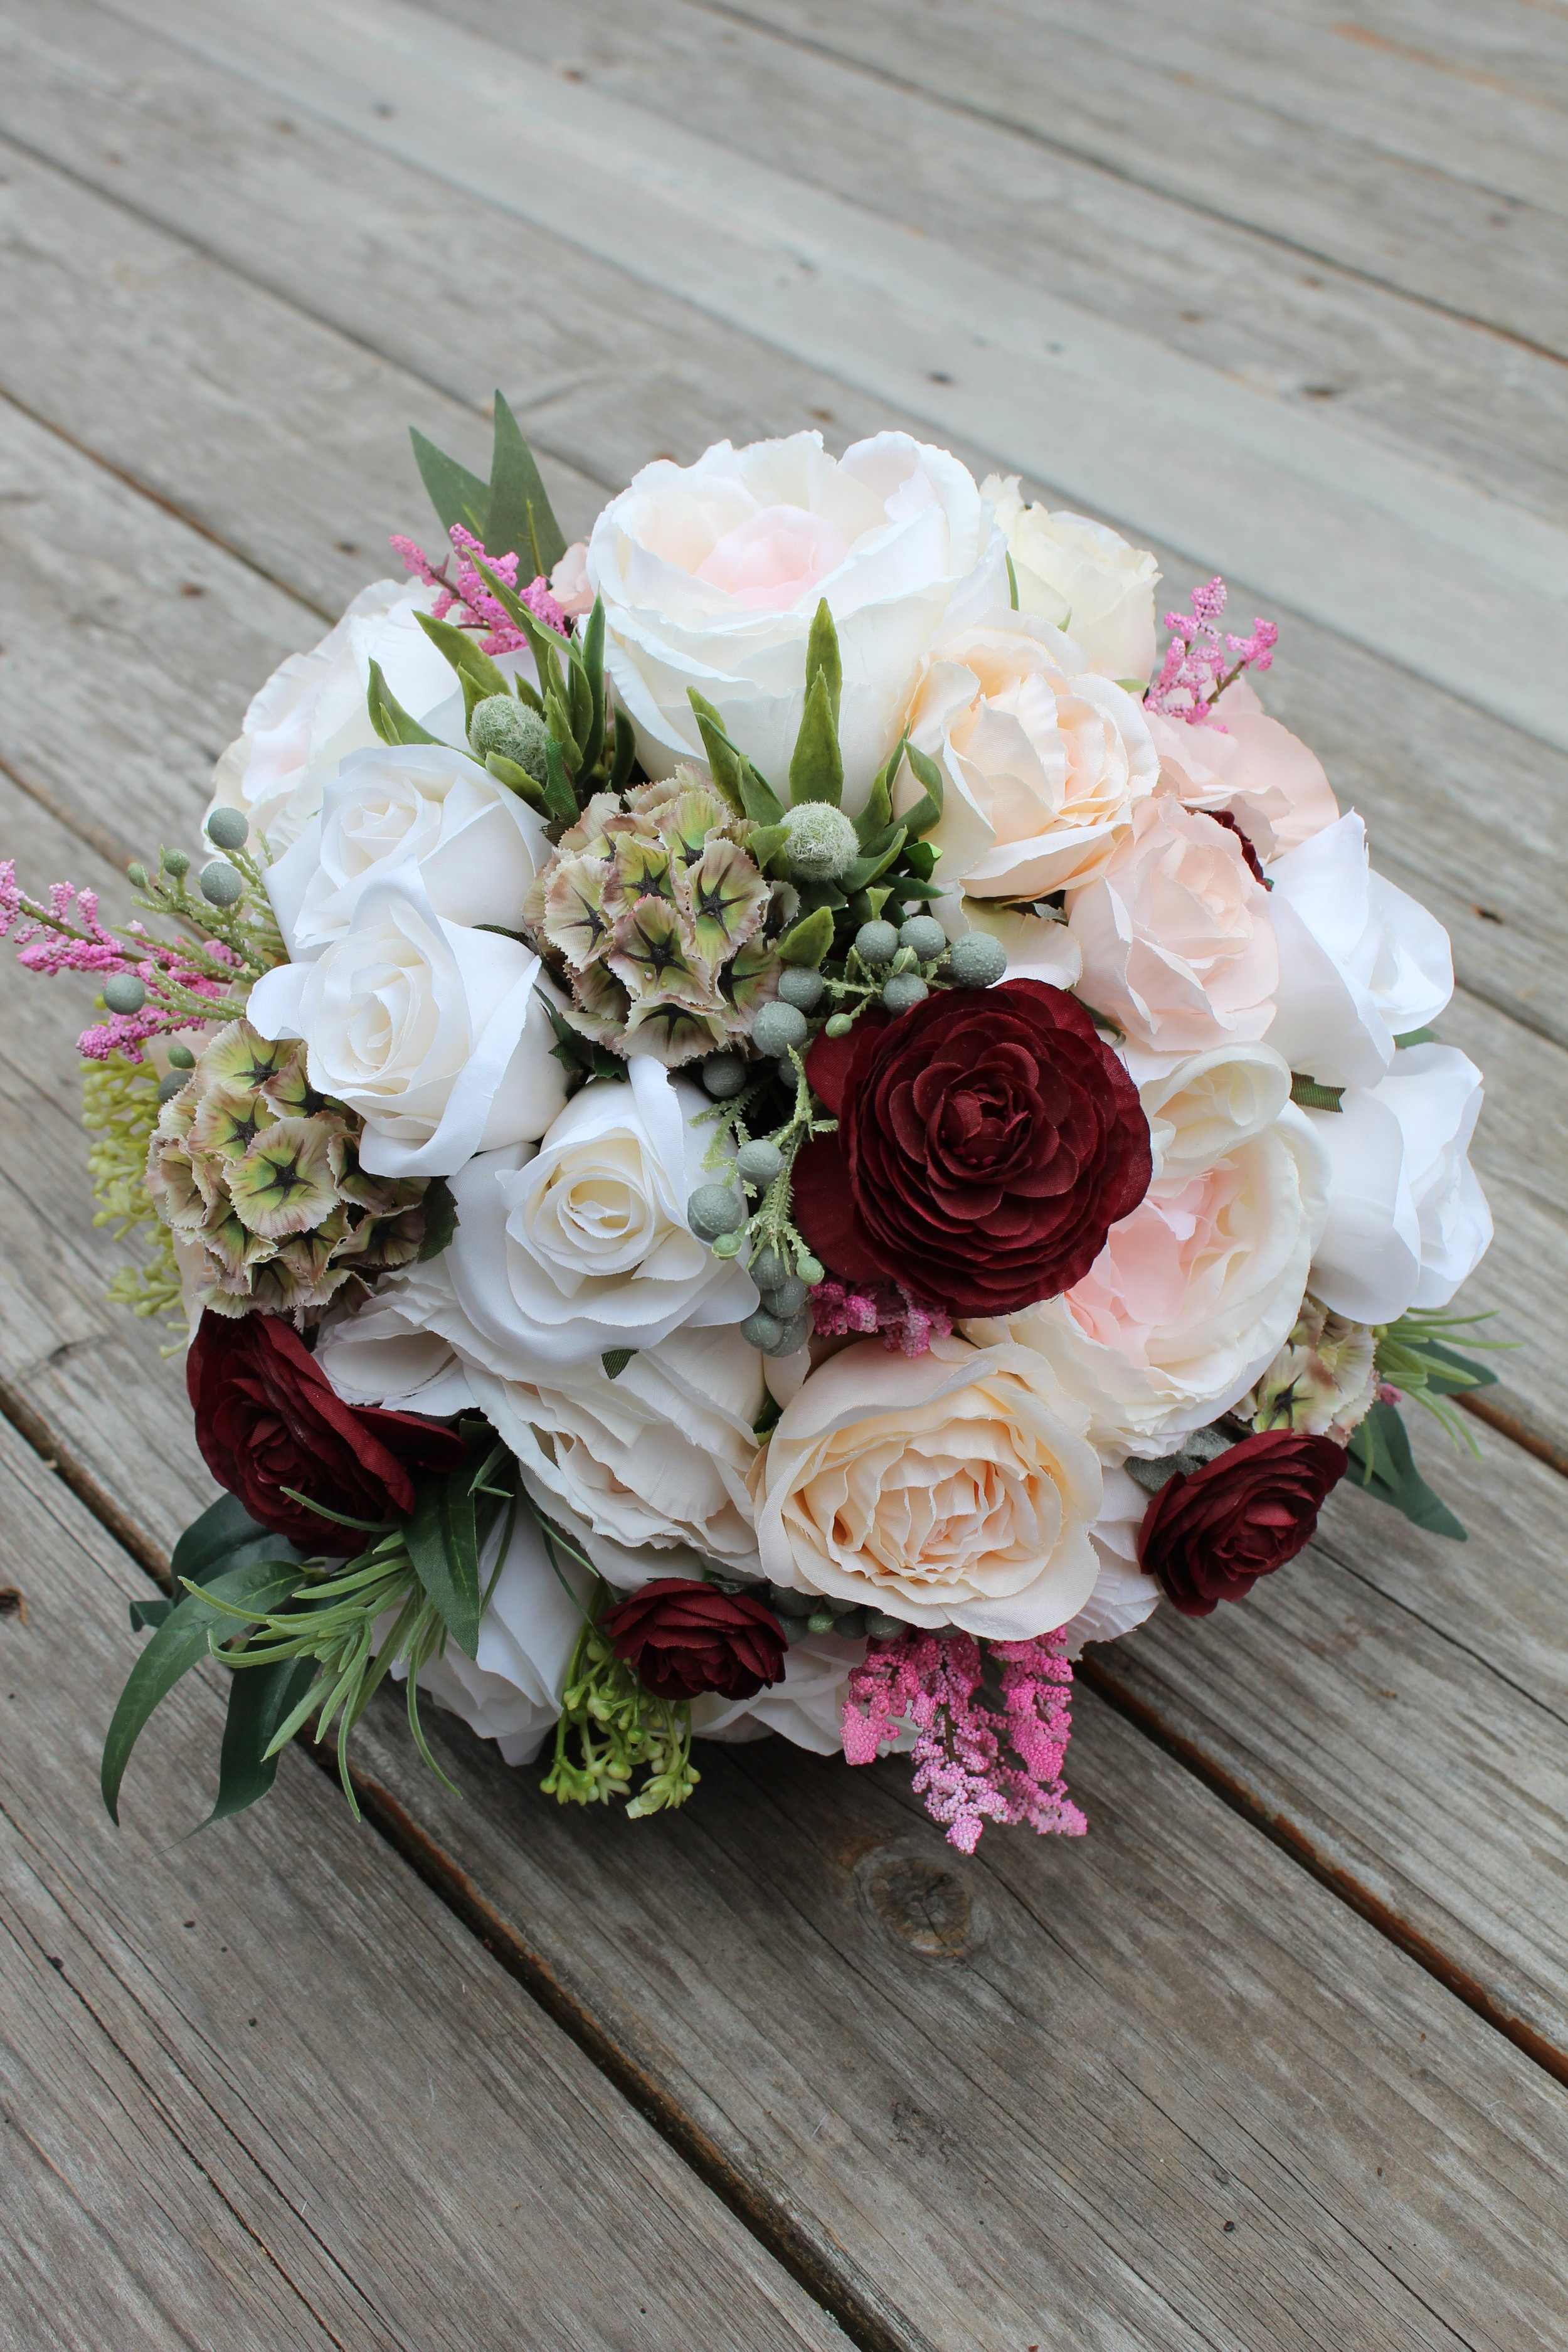 custom-bridal-bouquet-recreation-silk-wedding-flowers.jpg